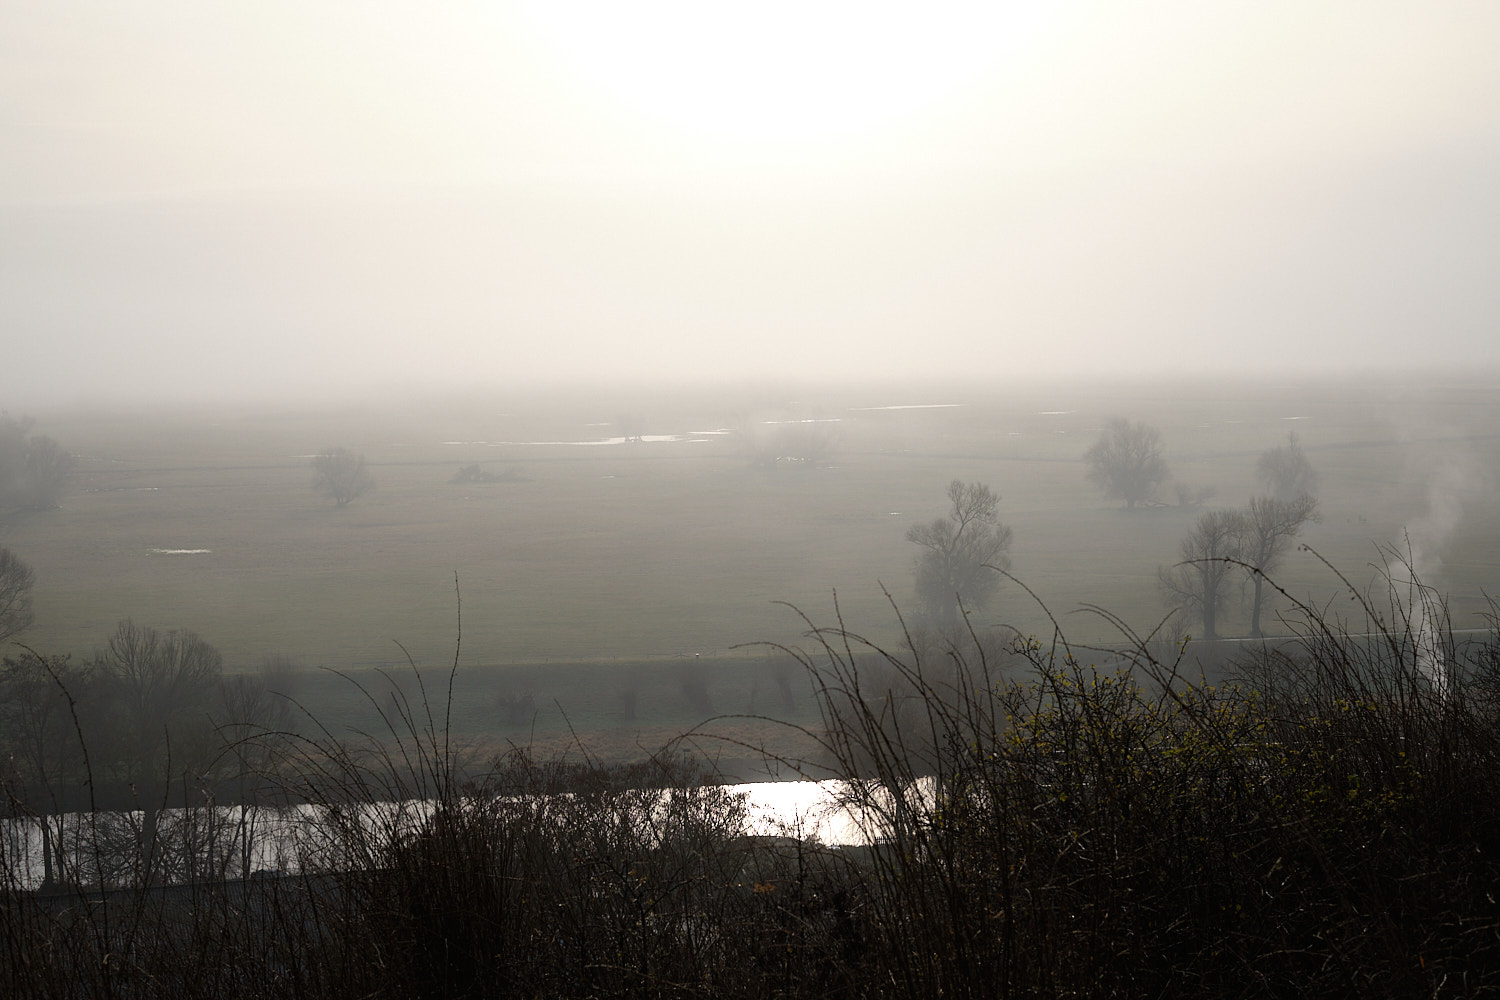 Winter equinox dimmed light under the fog at the banks of the Oder.